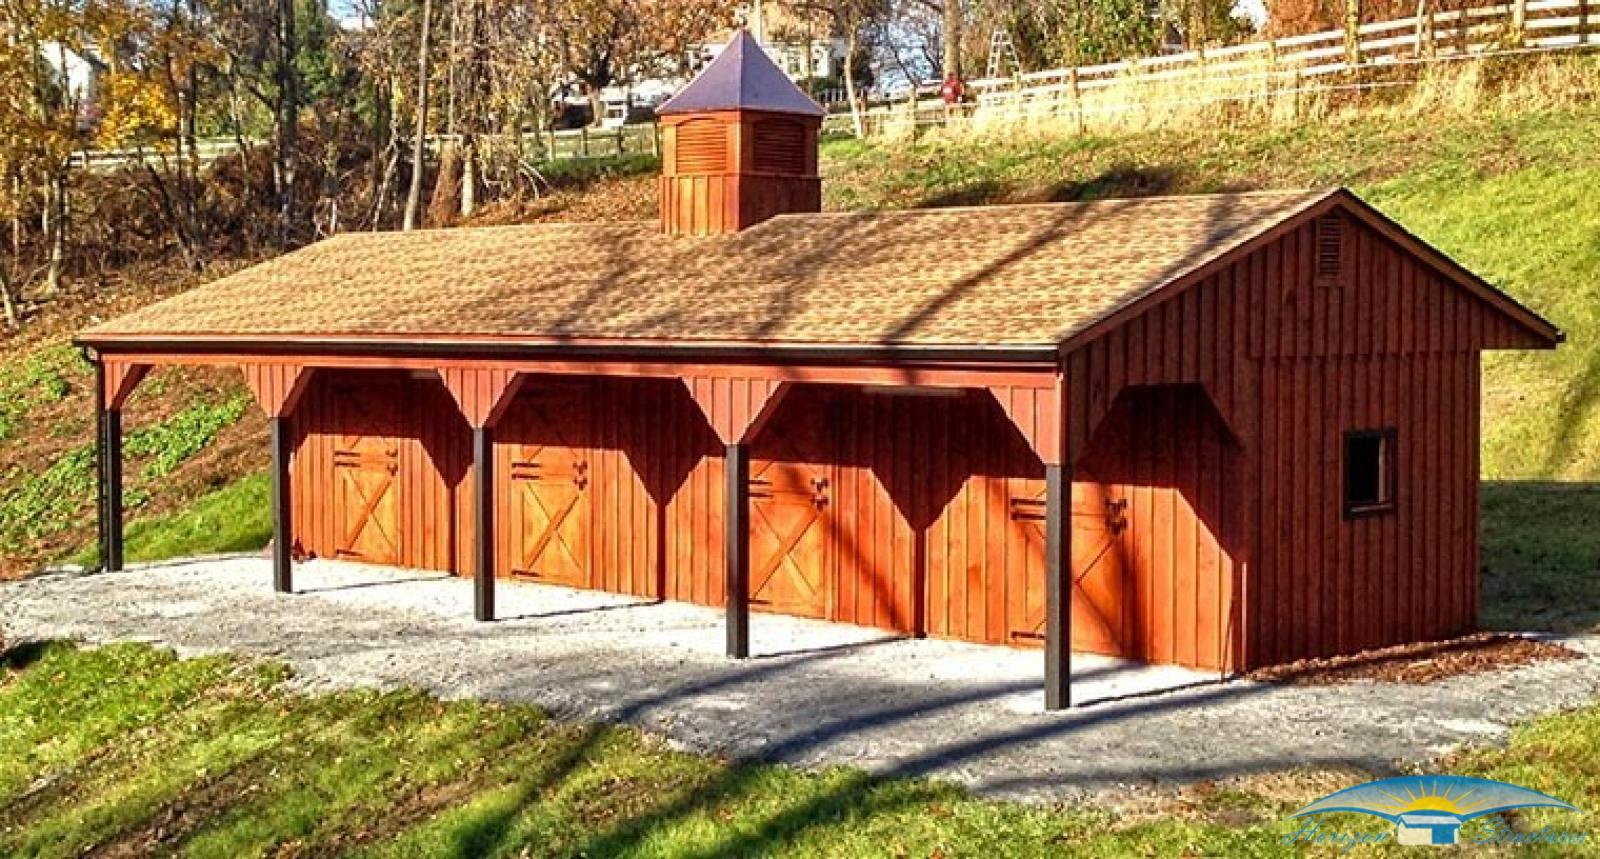 horse-barns-shed-row-in-12x48-with-8-foot-overhang-front-and-4-foot-overhang-in-the-back_1_0